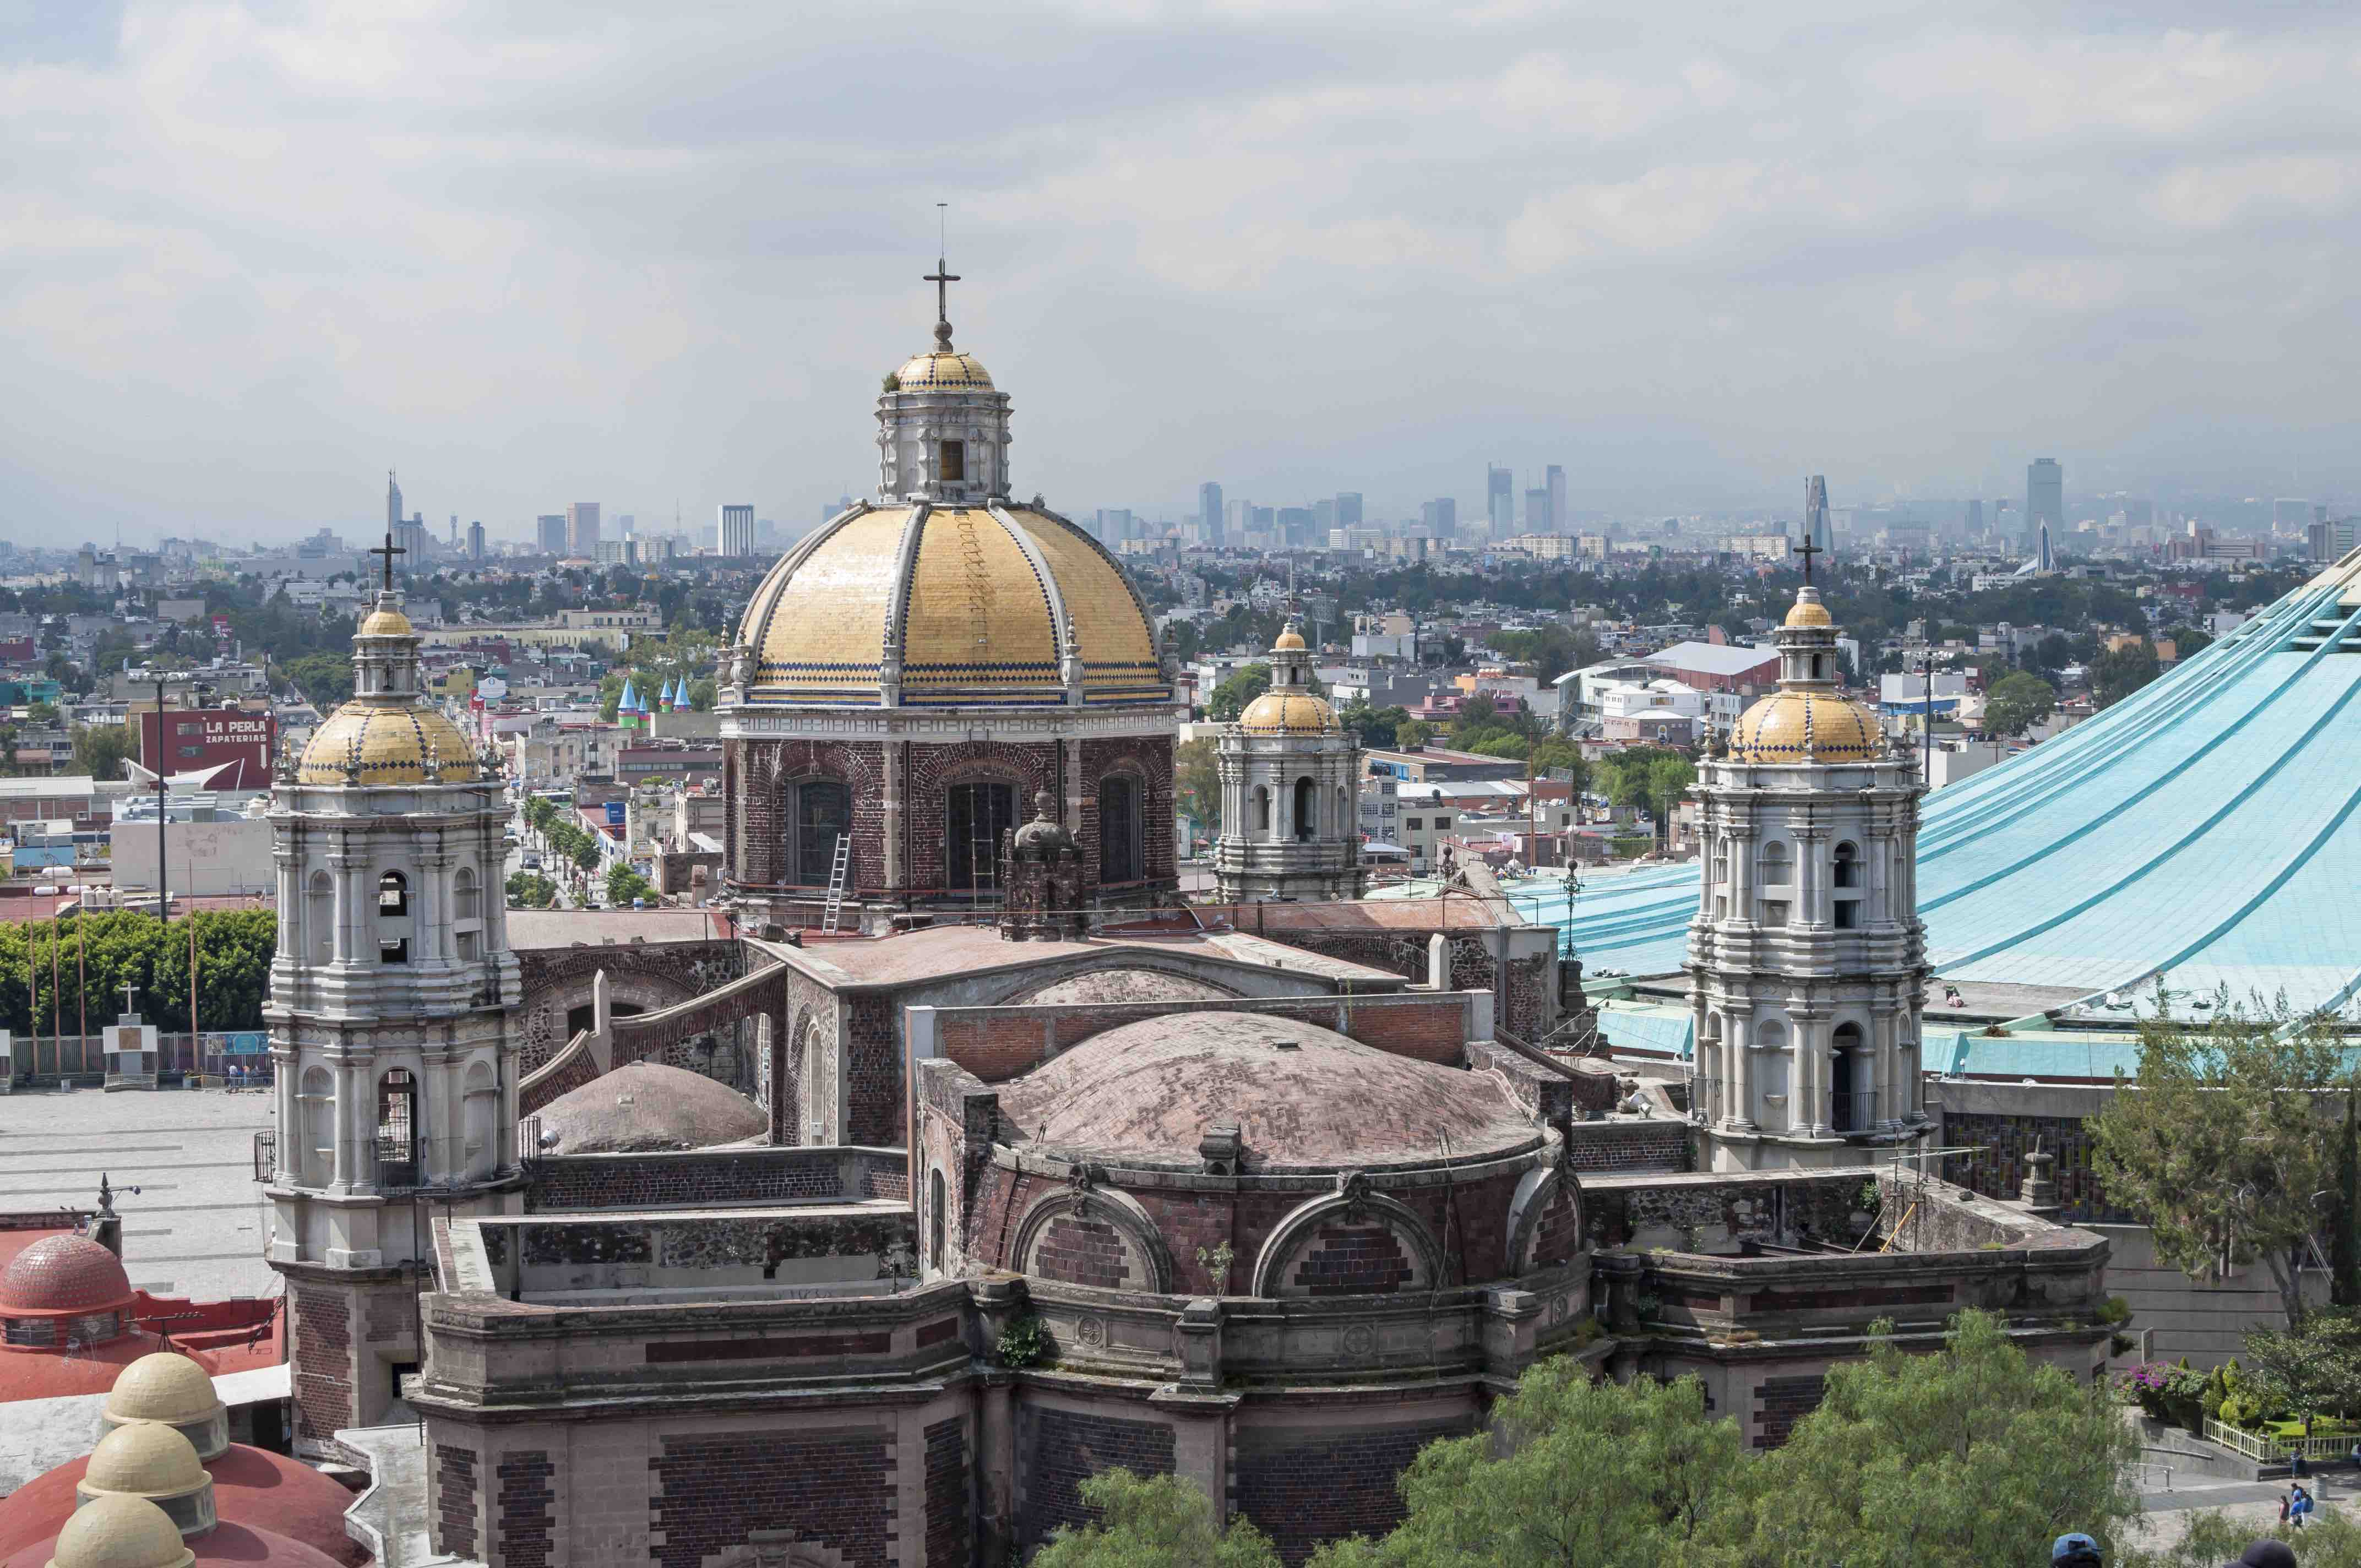 Travel thru history a visit to mexico city tenochtitlan for Travel to mexico city